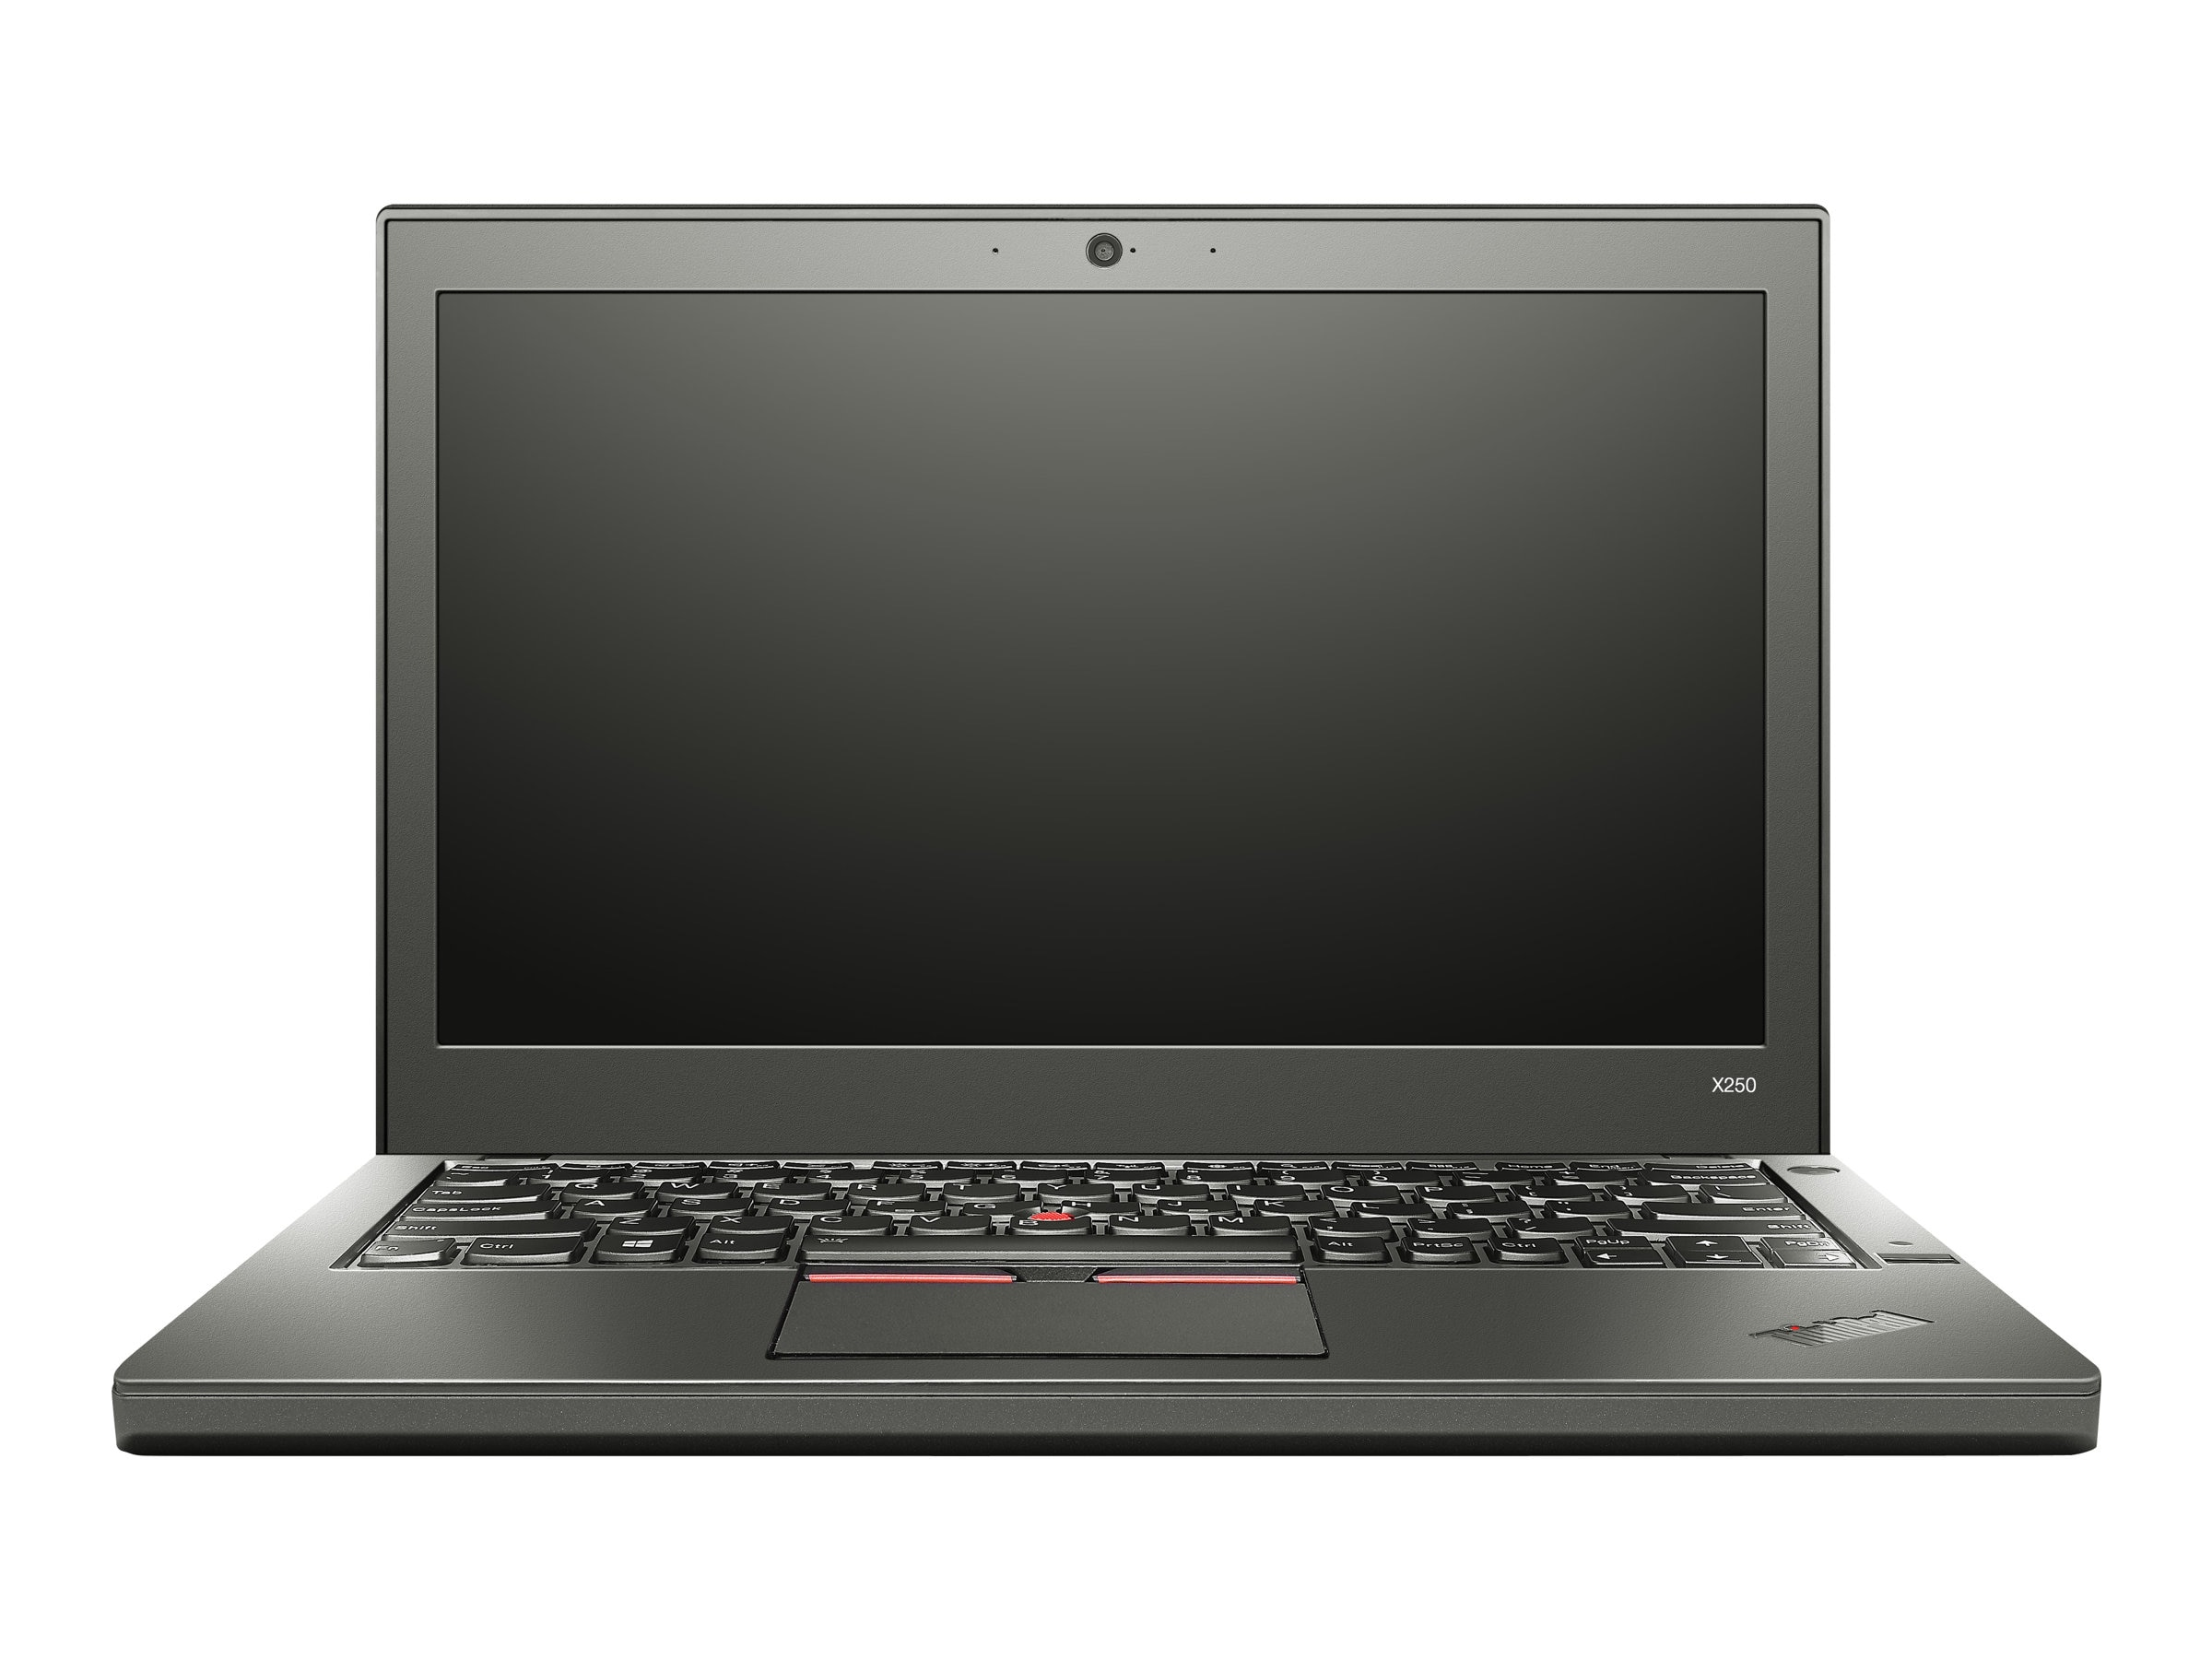 Lenovo TopSeller ThinkPad X250 2.2GHz Core i5 12.5in display, 20CM005HUS